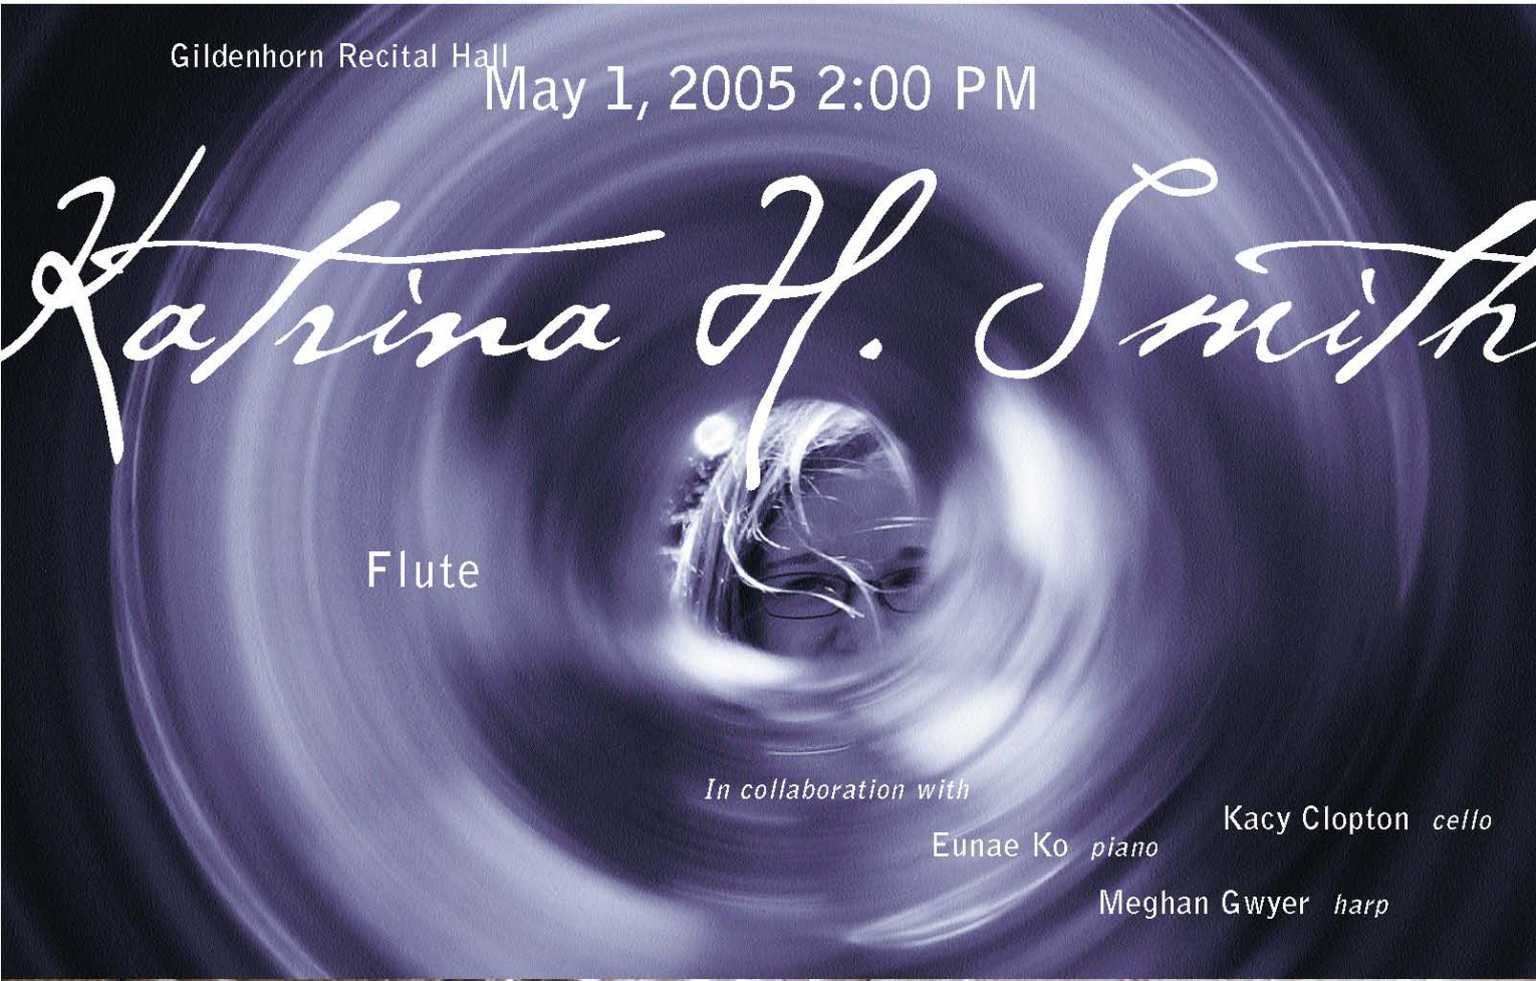 Flute recital promotional postcard for Katrina Smith